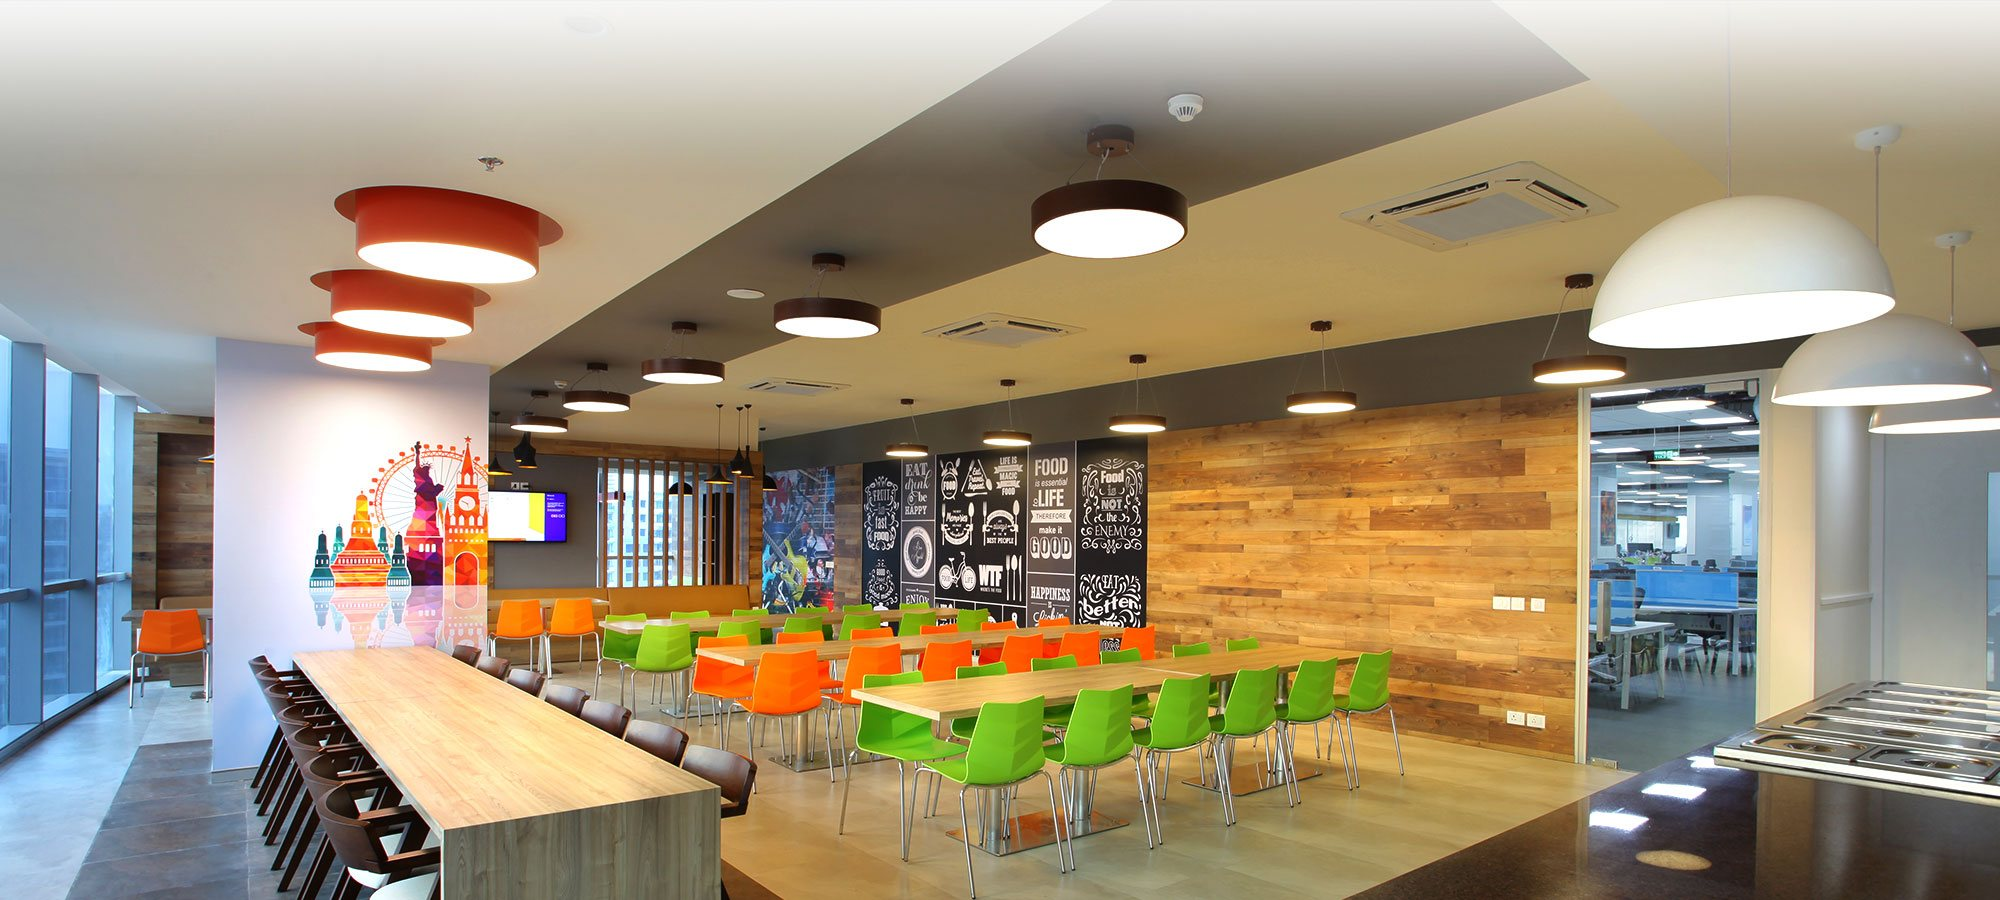 Corporate Interior Designers Delhi,Office Interior Designing Firm